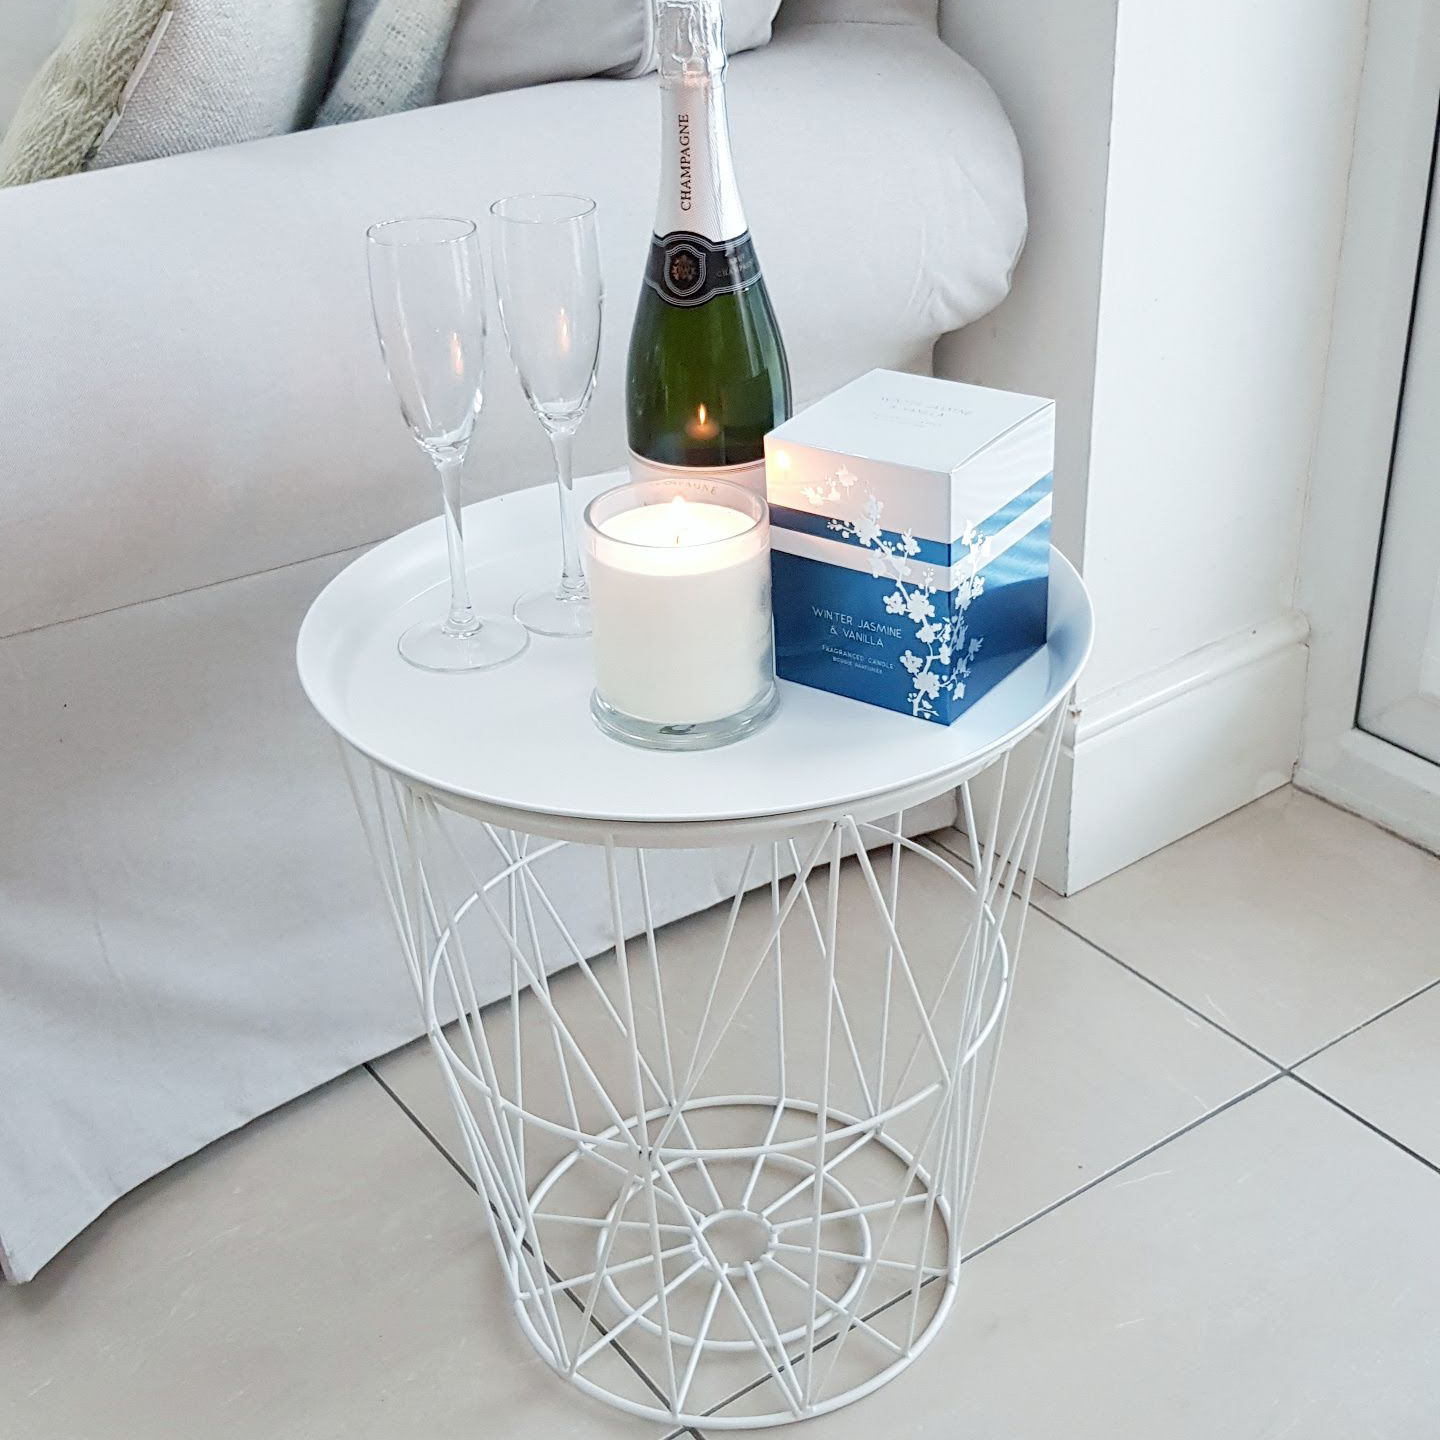 Geometric Metal Tray Side Table - 44cm x 40cm